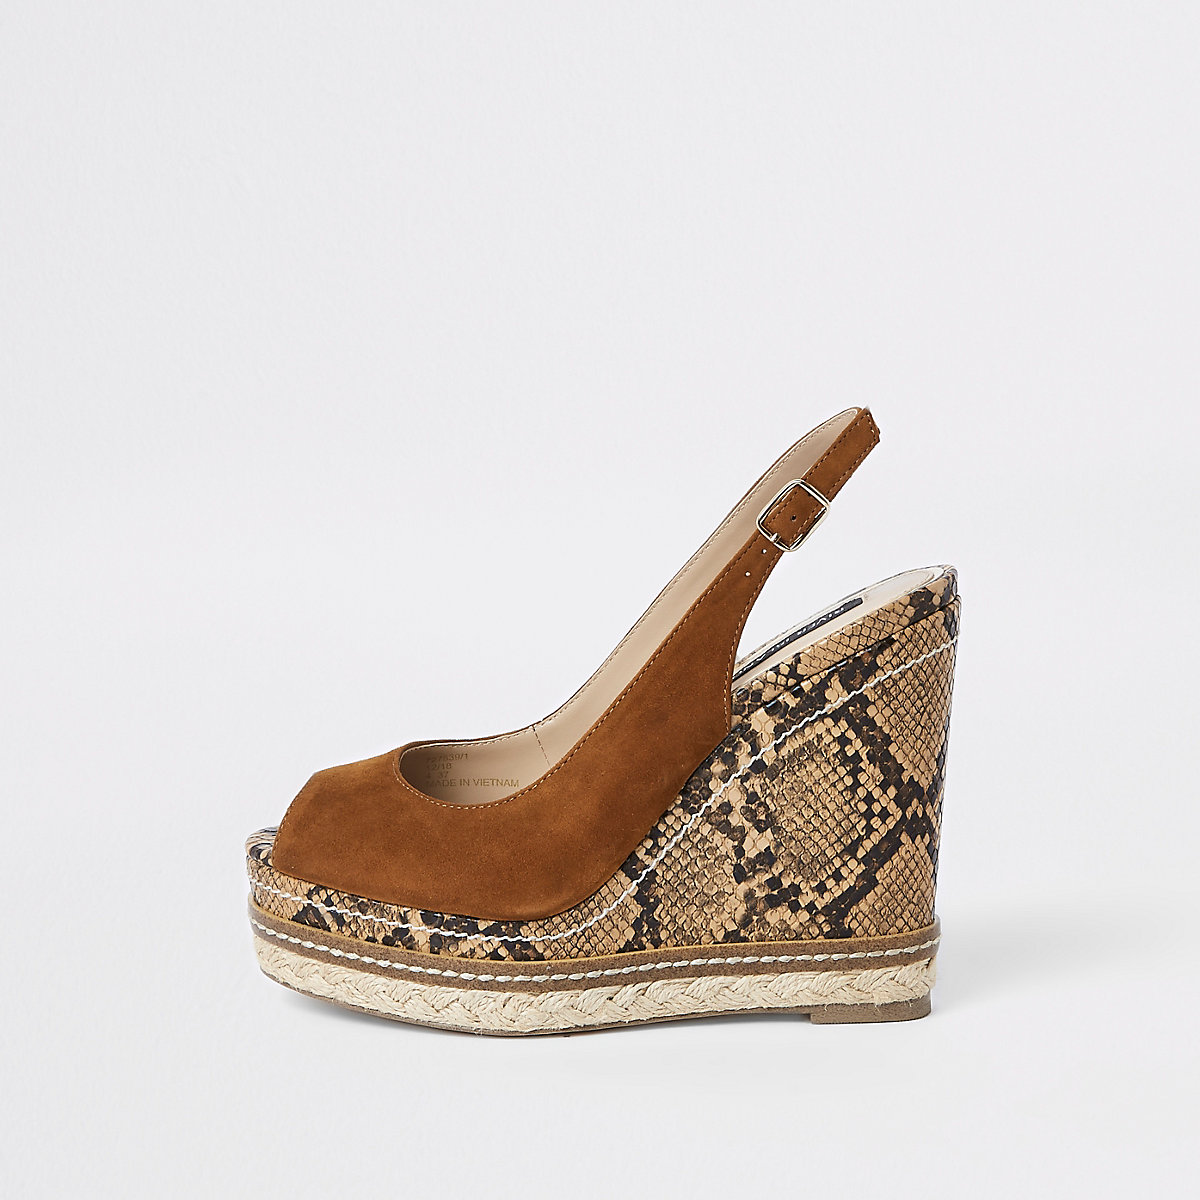 Brown leather snake espadrille trim wedges